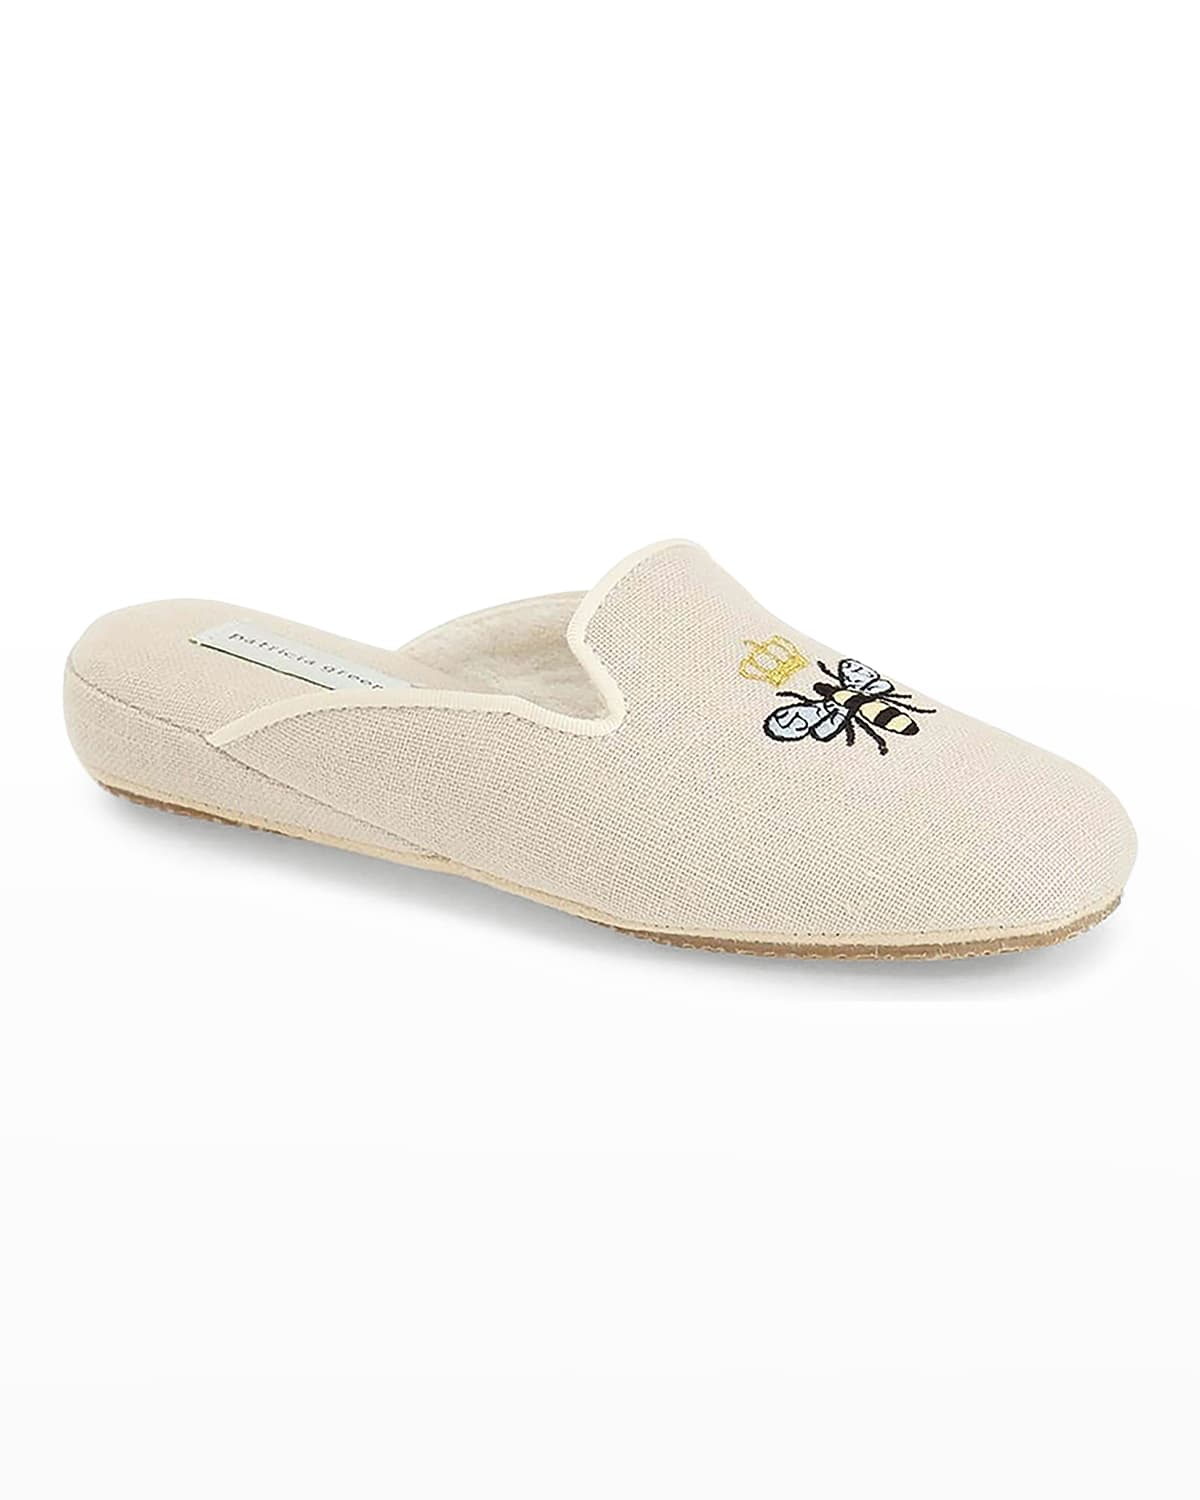 Queen Bee Embroidered Slippers